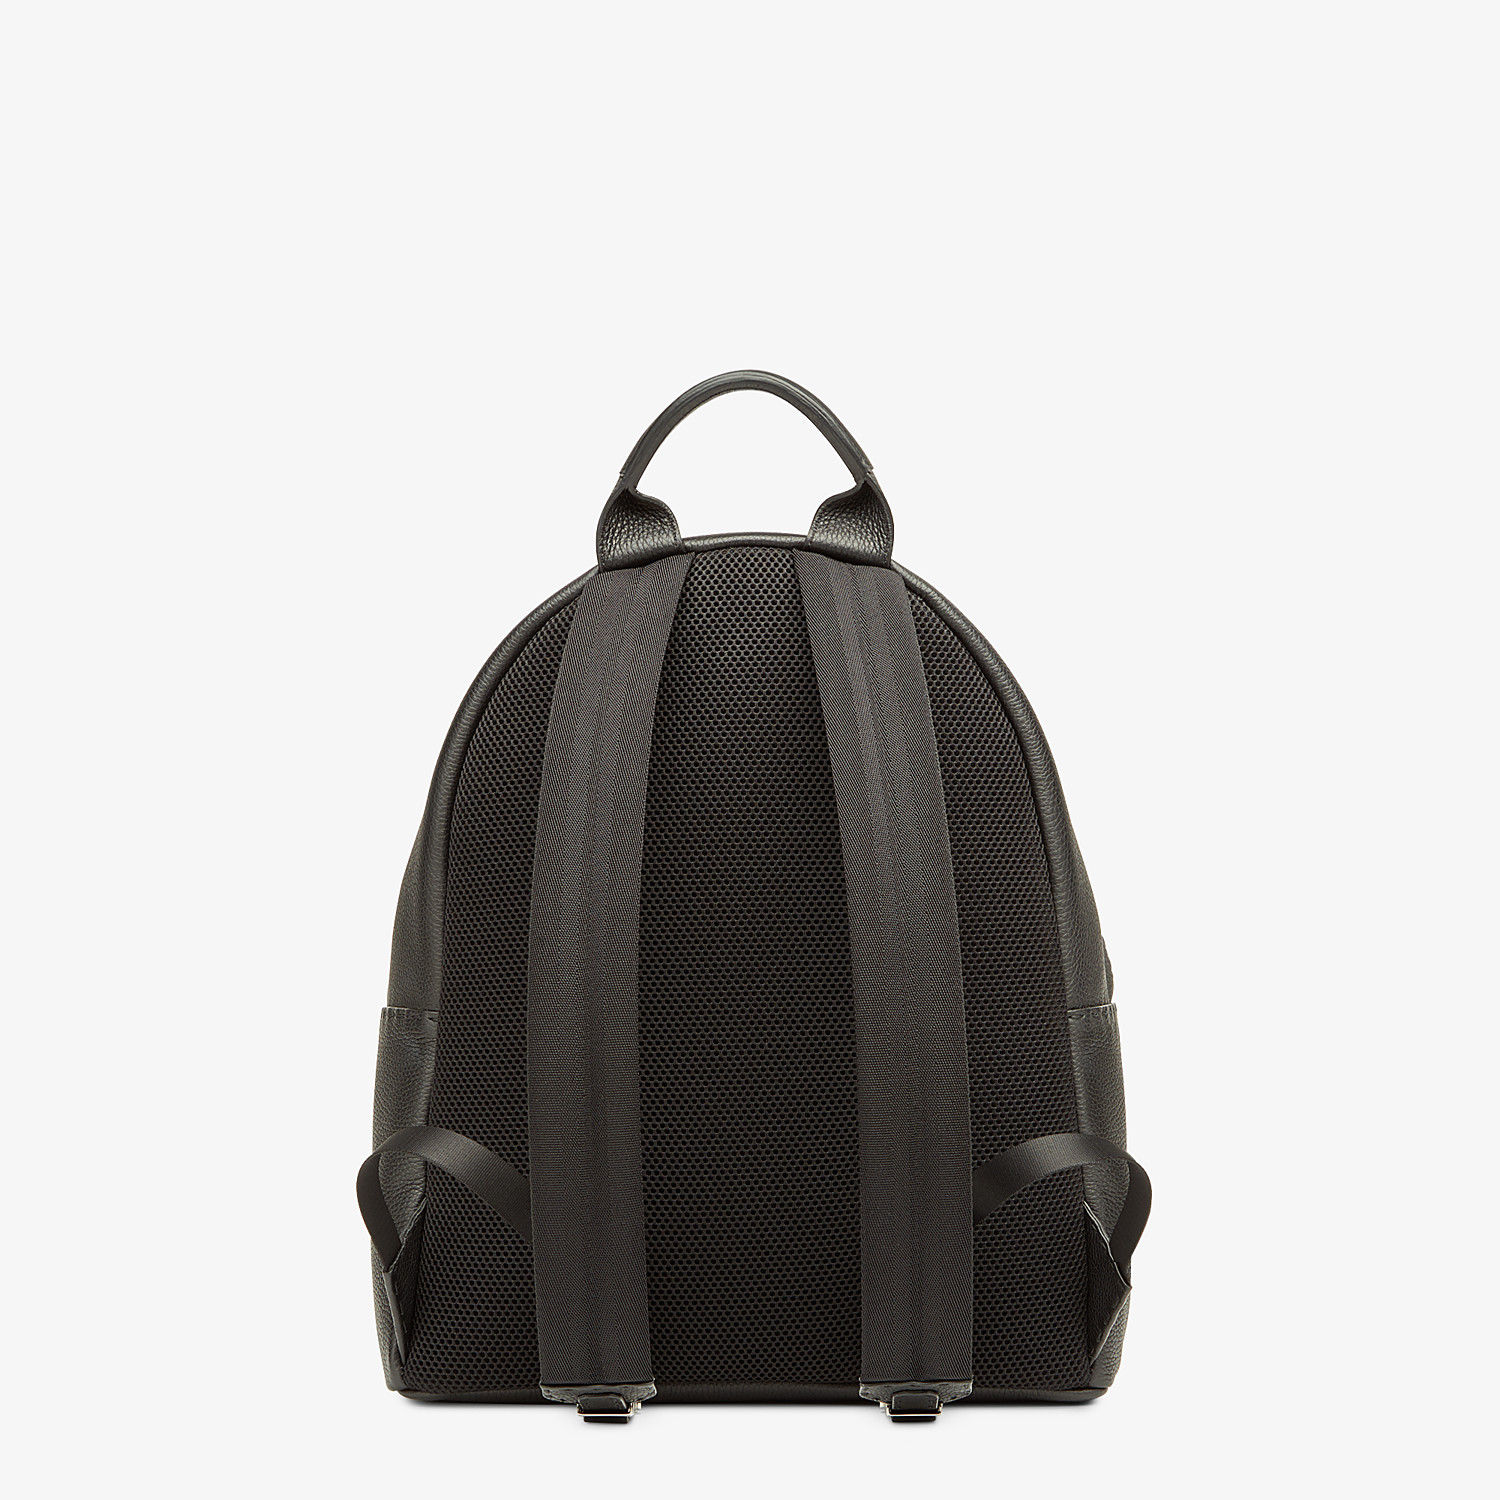 FENDI BACKPACK - In black Roman leather with inlay - view 3 detail